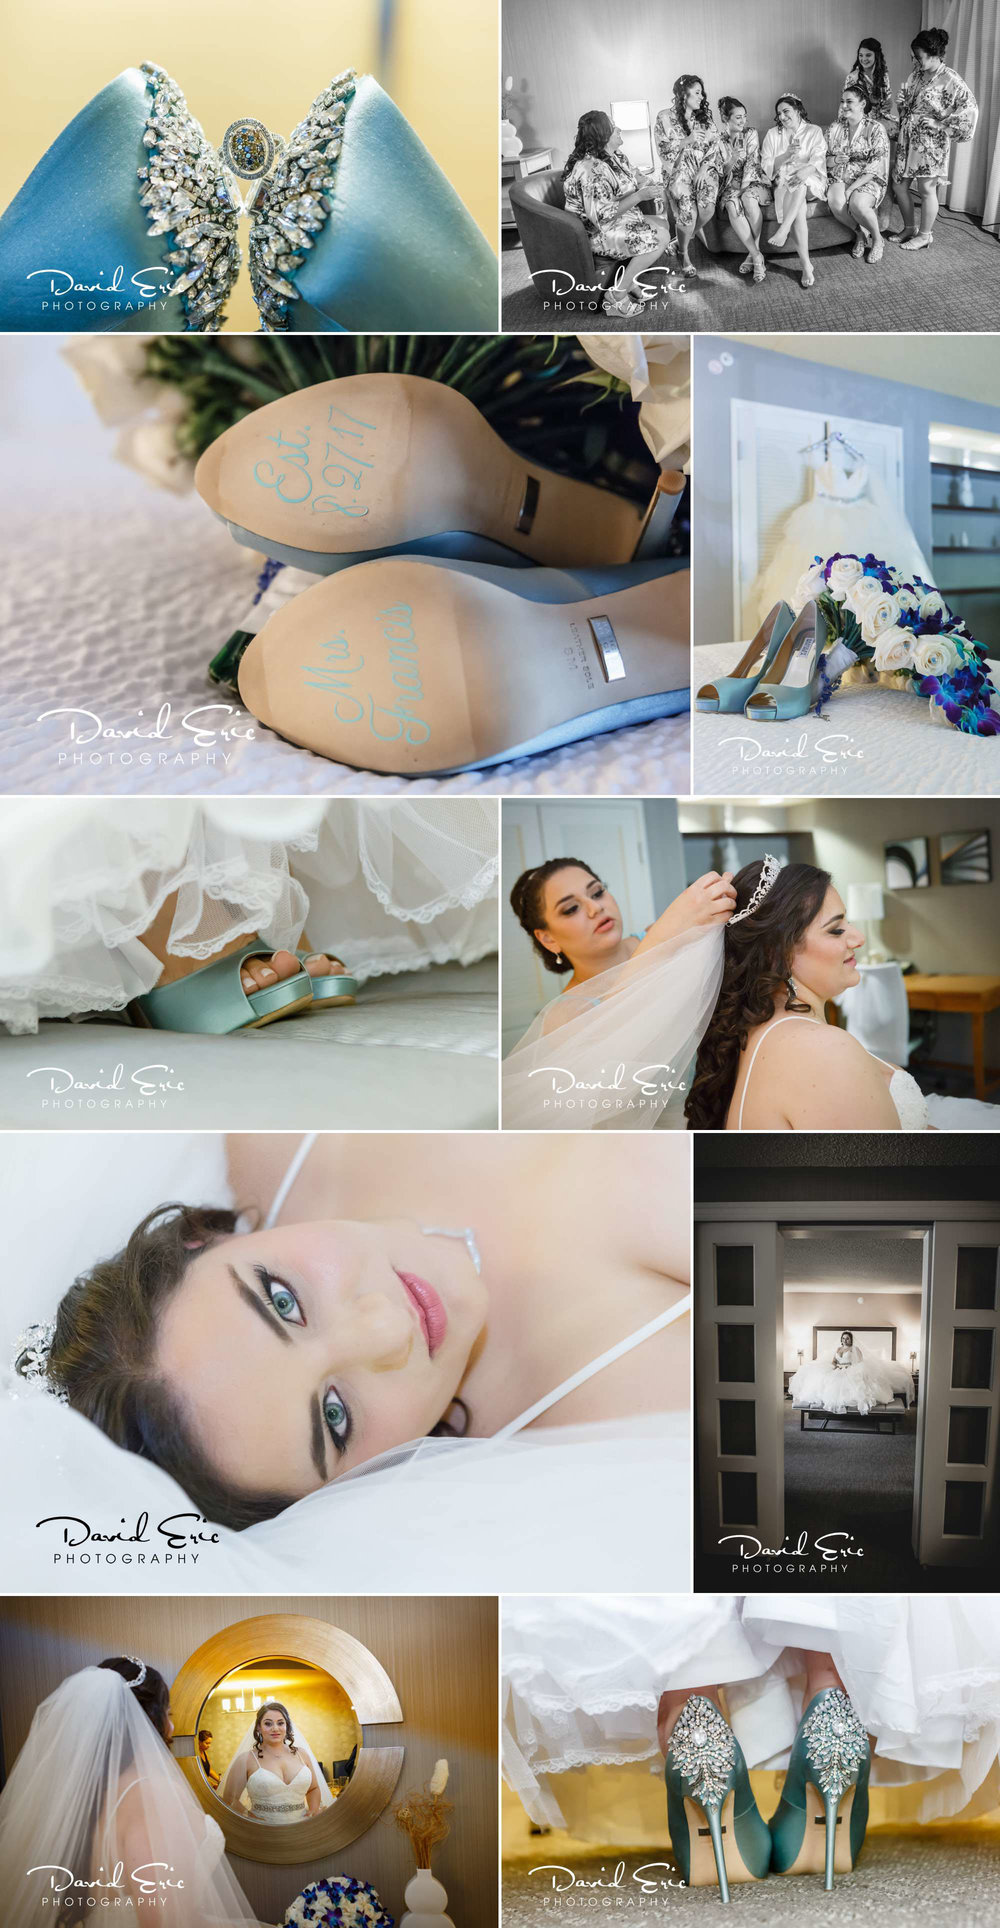 Bride getting ready for her wedding at seasons washington twp nj, here are photos of wedding shoe wedding dress veil and wedding flowers